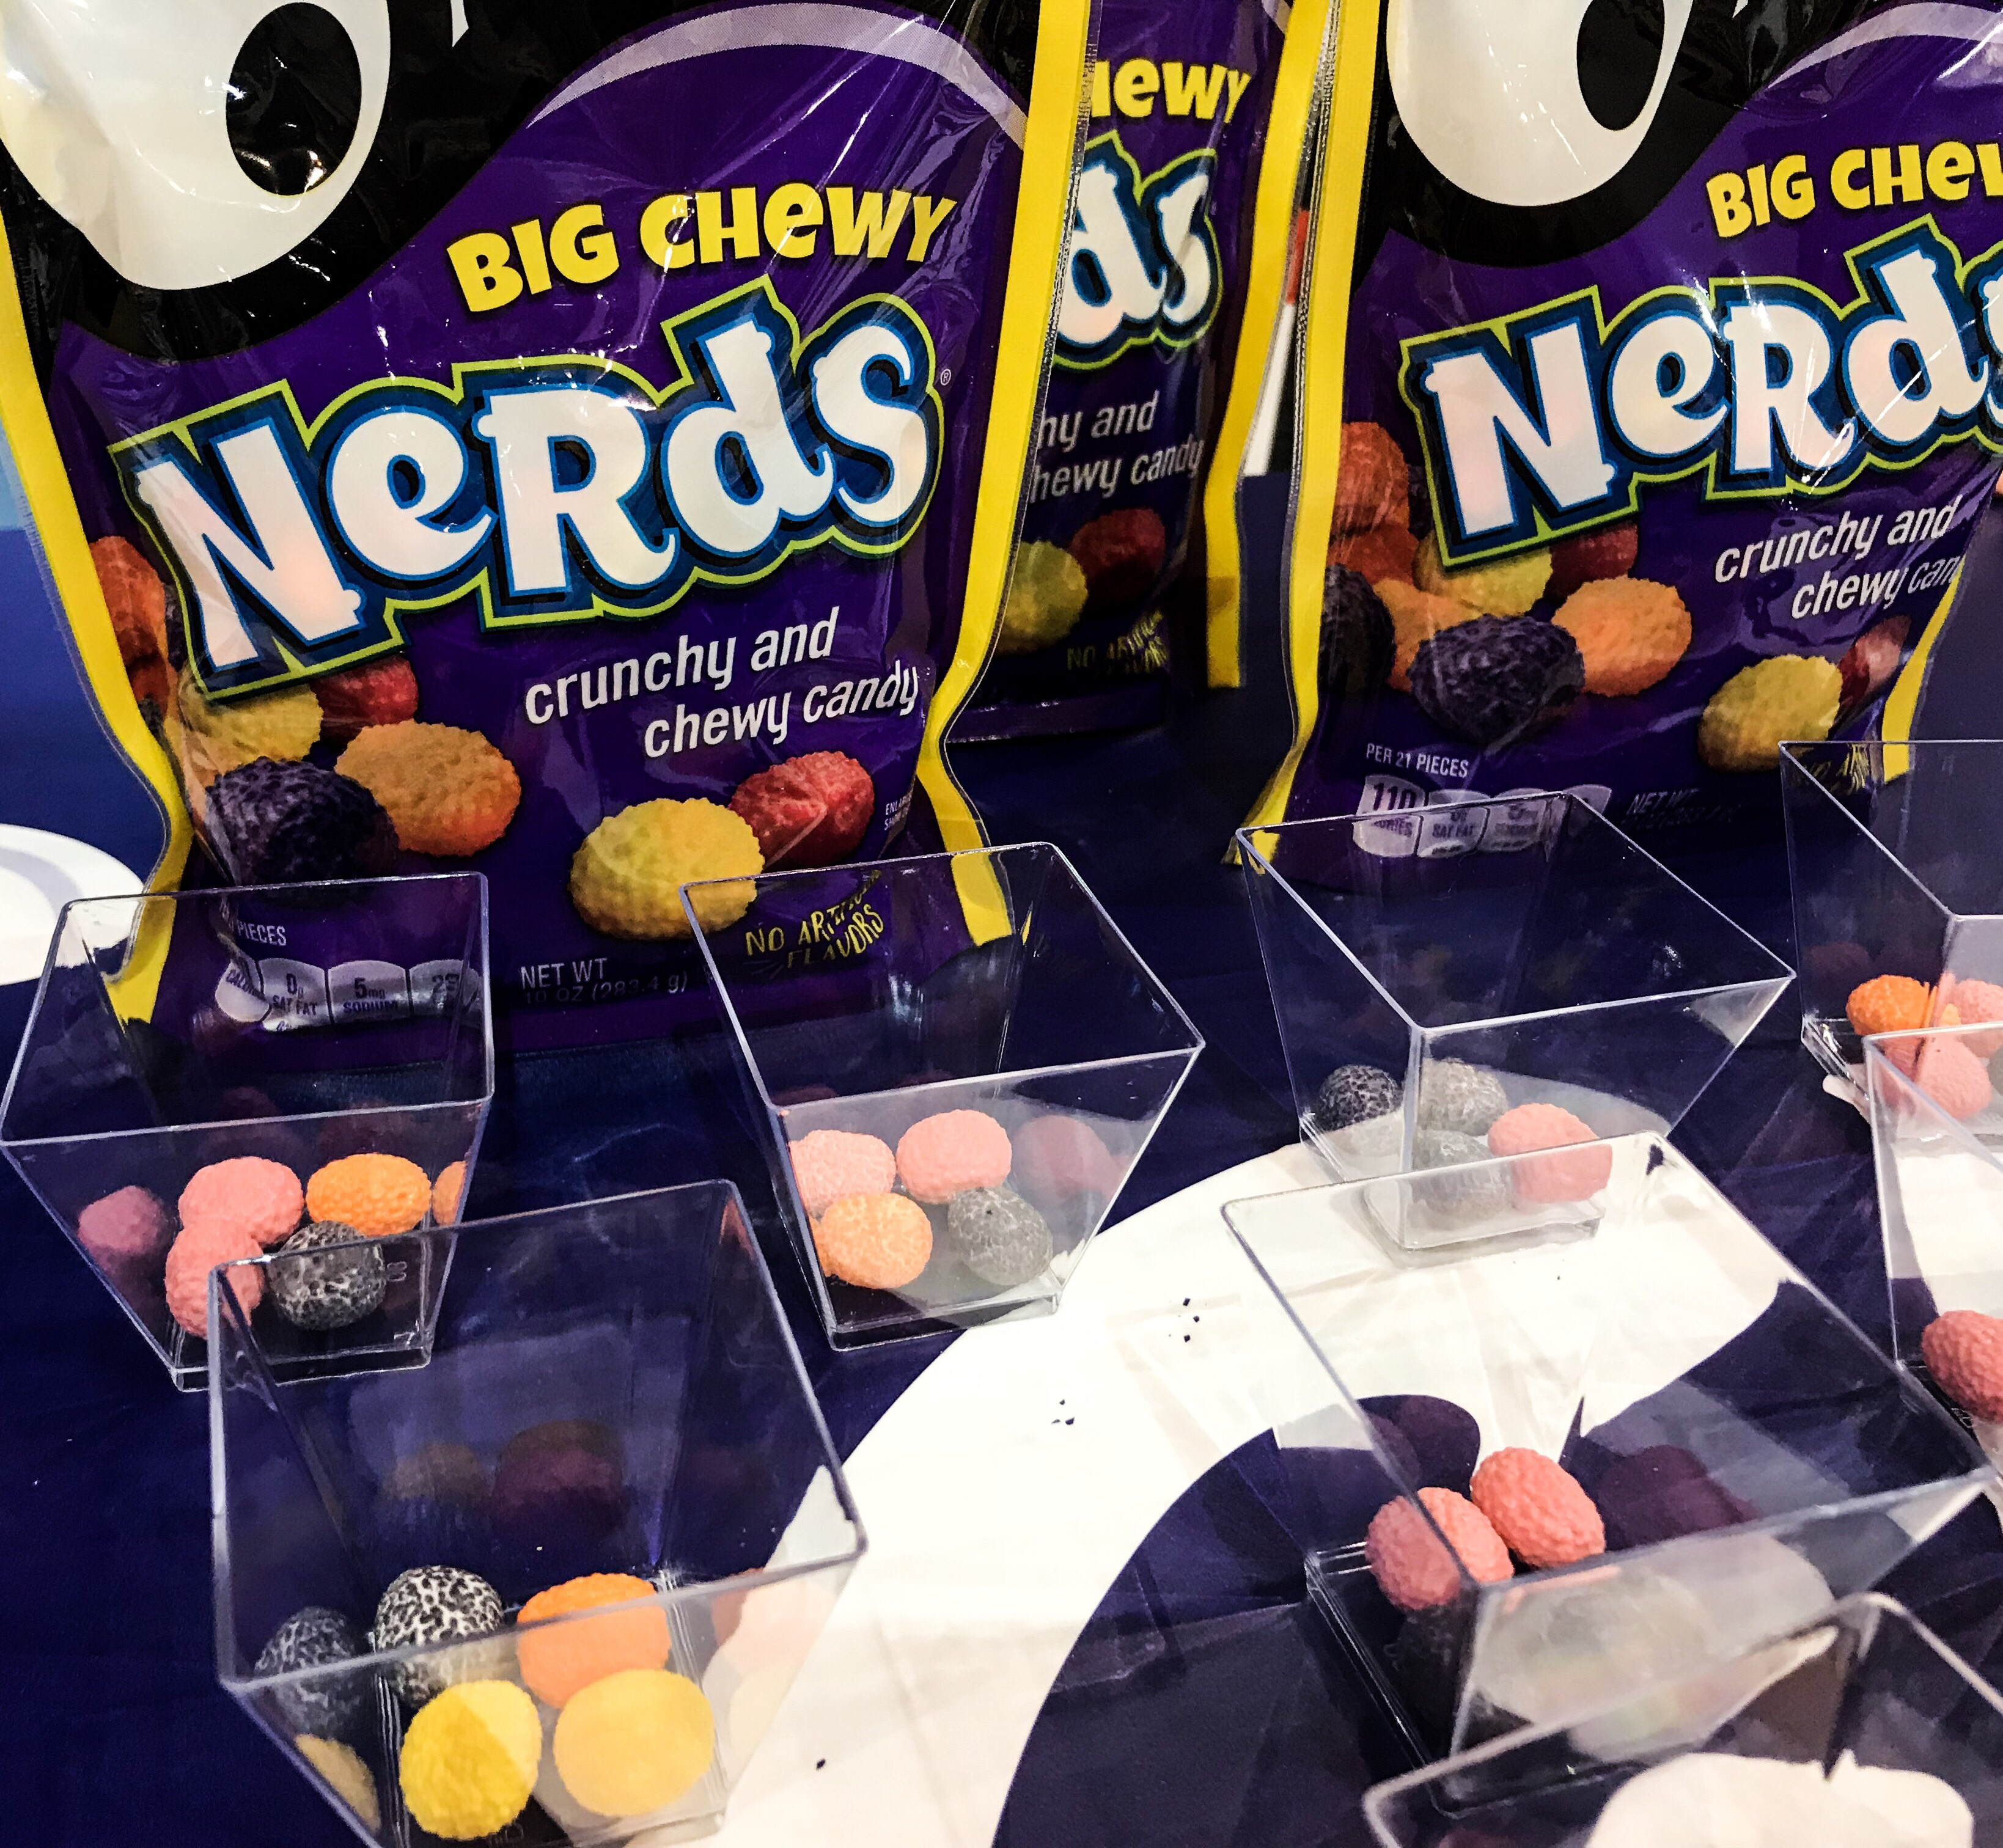 Pucker Up Sour Candy Is On Trend At Sweets And Snacks Expo Snack Photo By